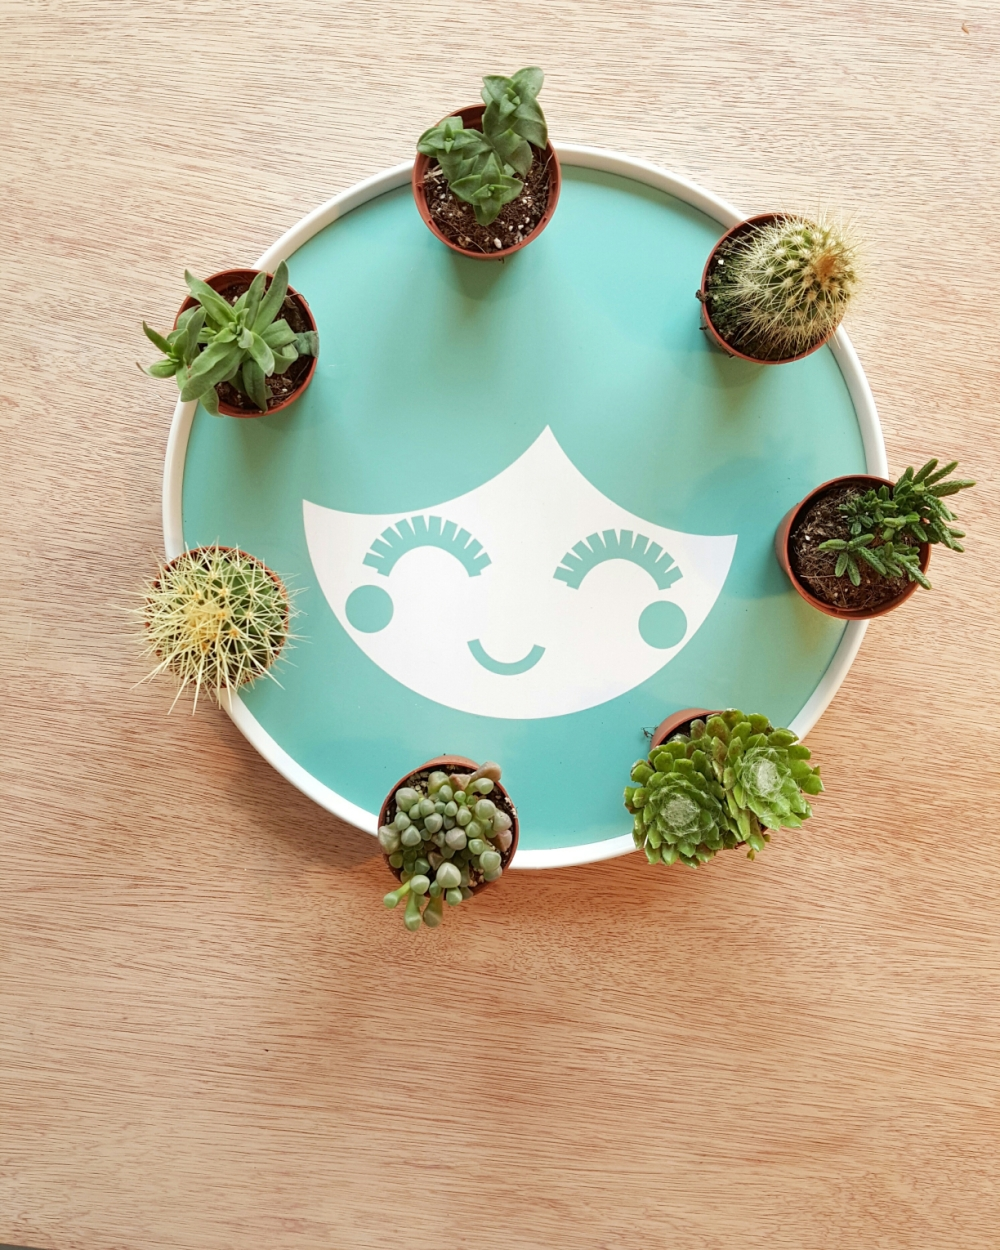 Simple Succulent Cacti bowl: How to make your own.